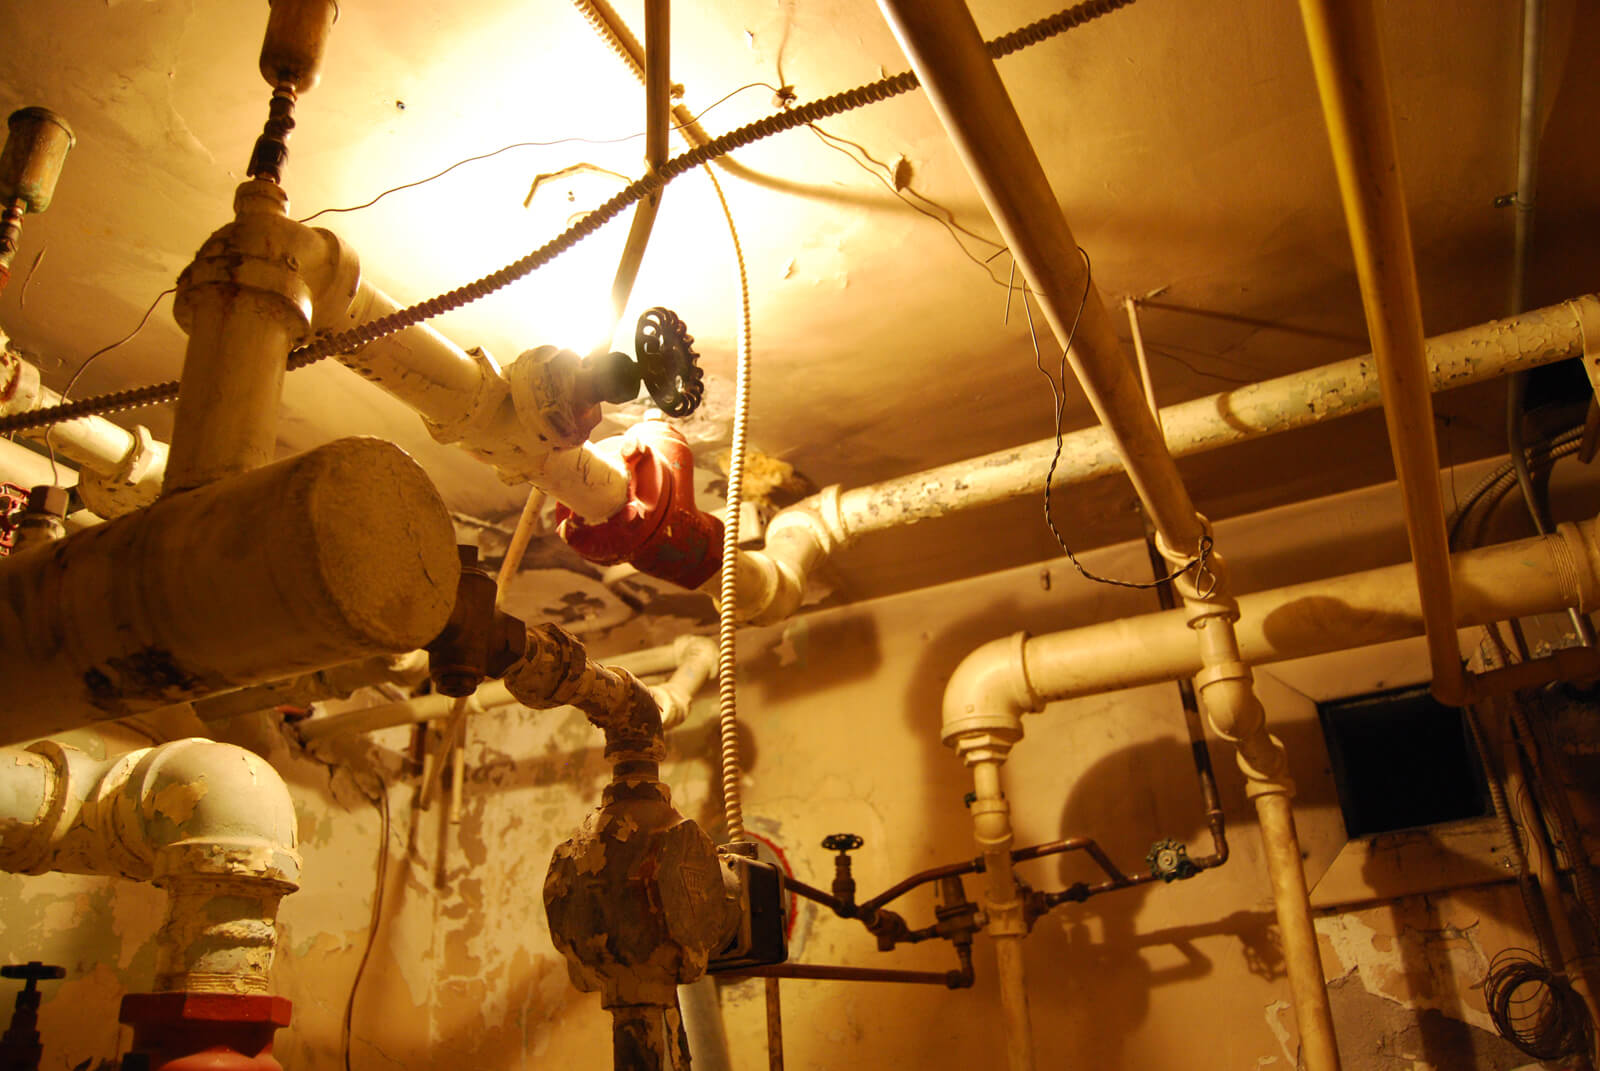 PLUMBING SERVICES IN SEAFORTH